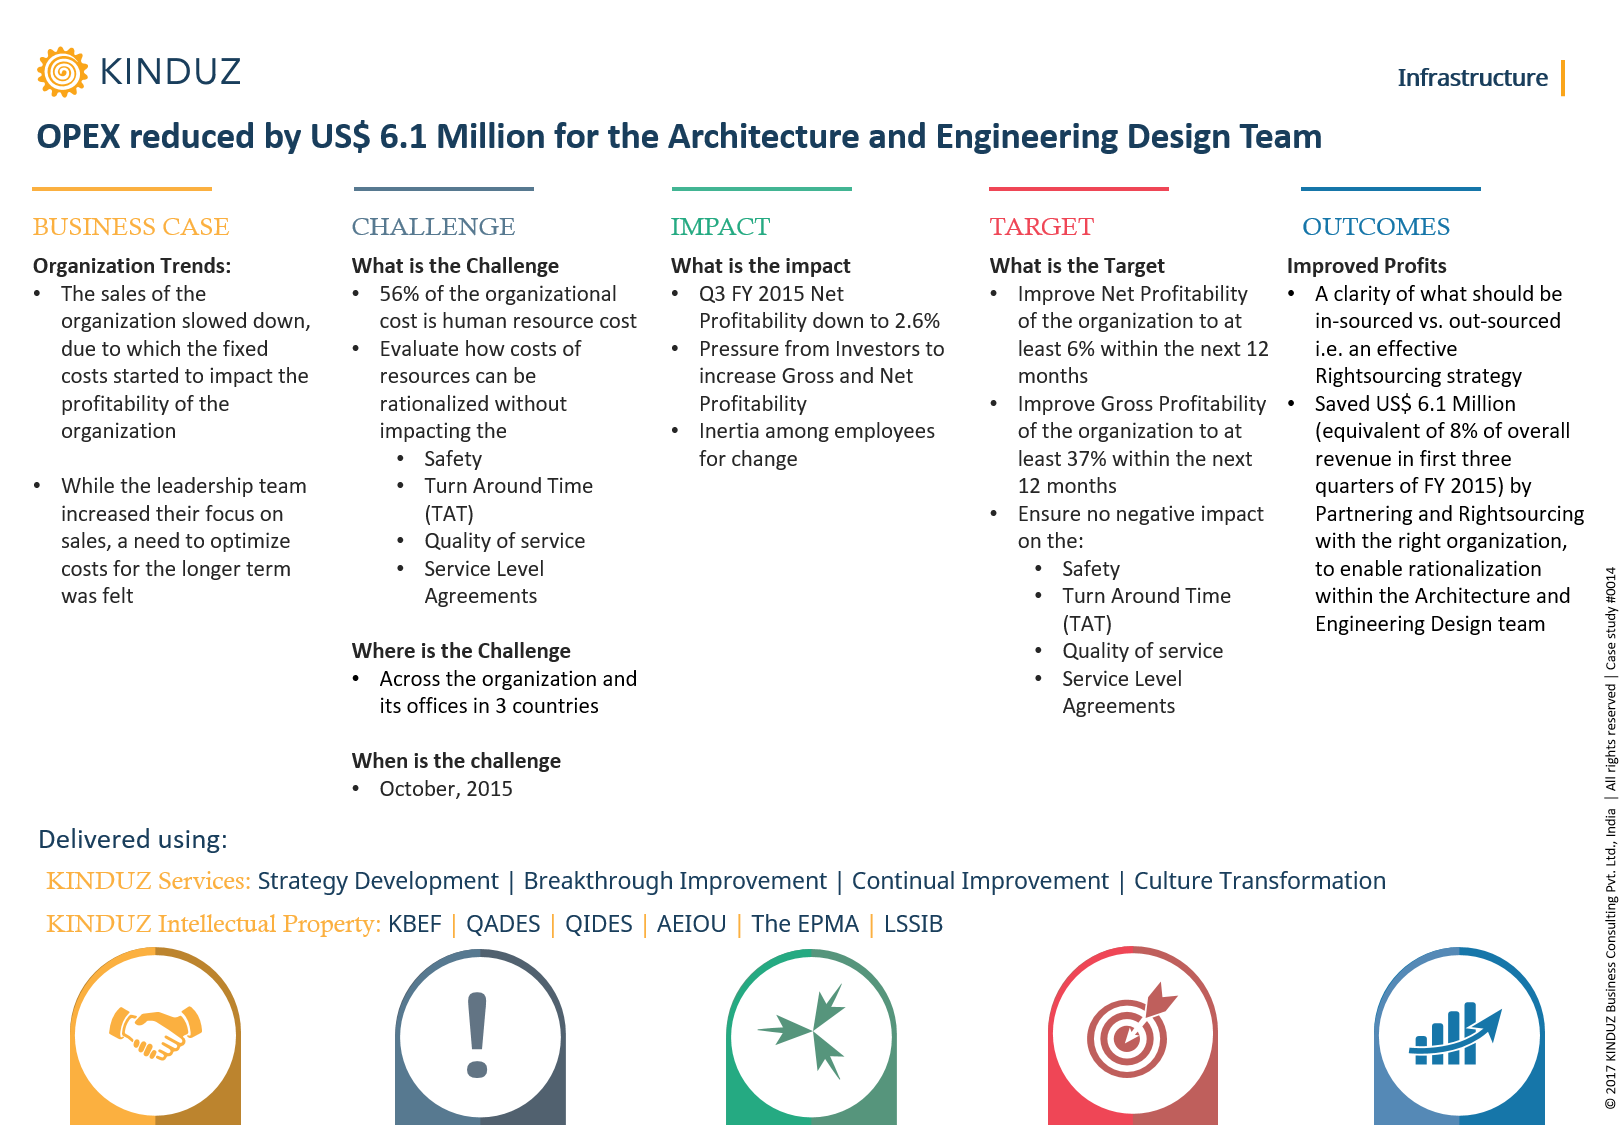 opex-reduced-by-us-6.1-million-for-the-architecture-and-engineering-design-team